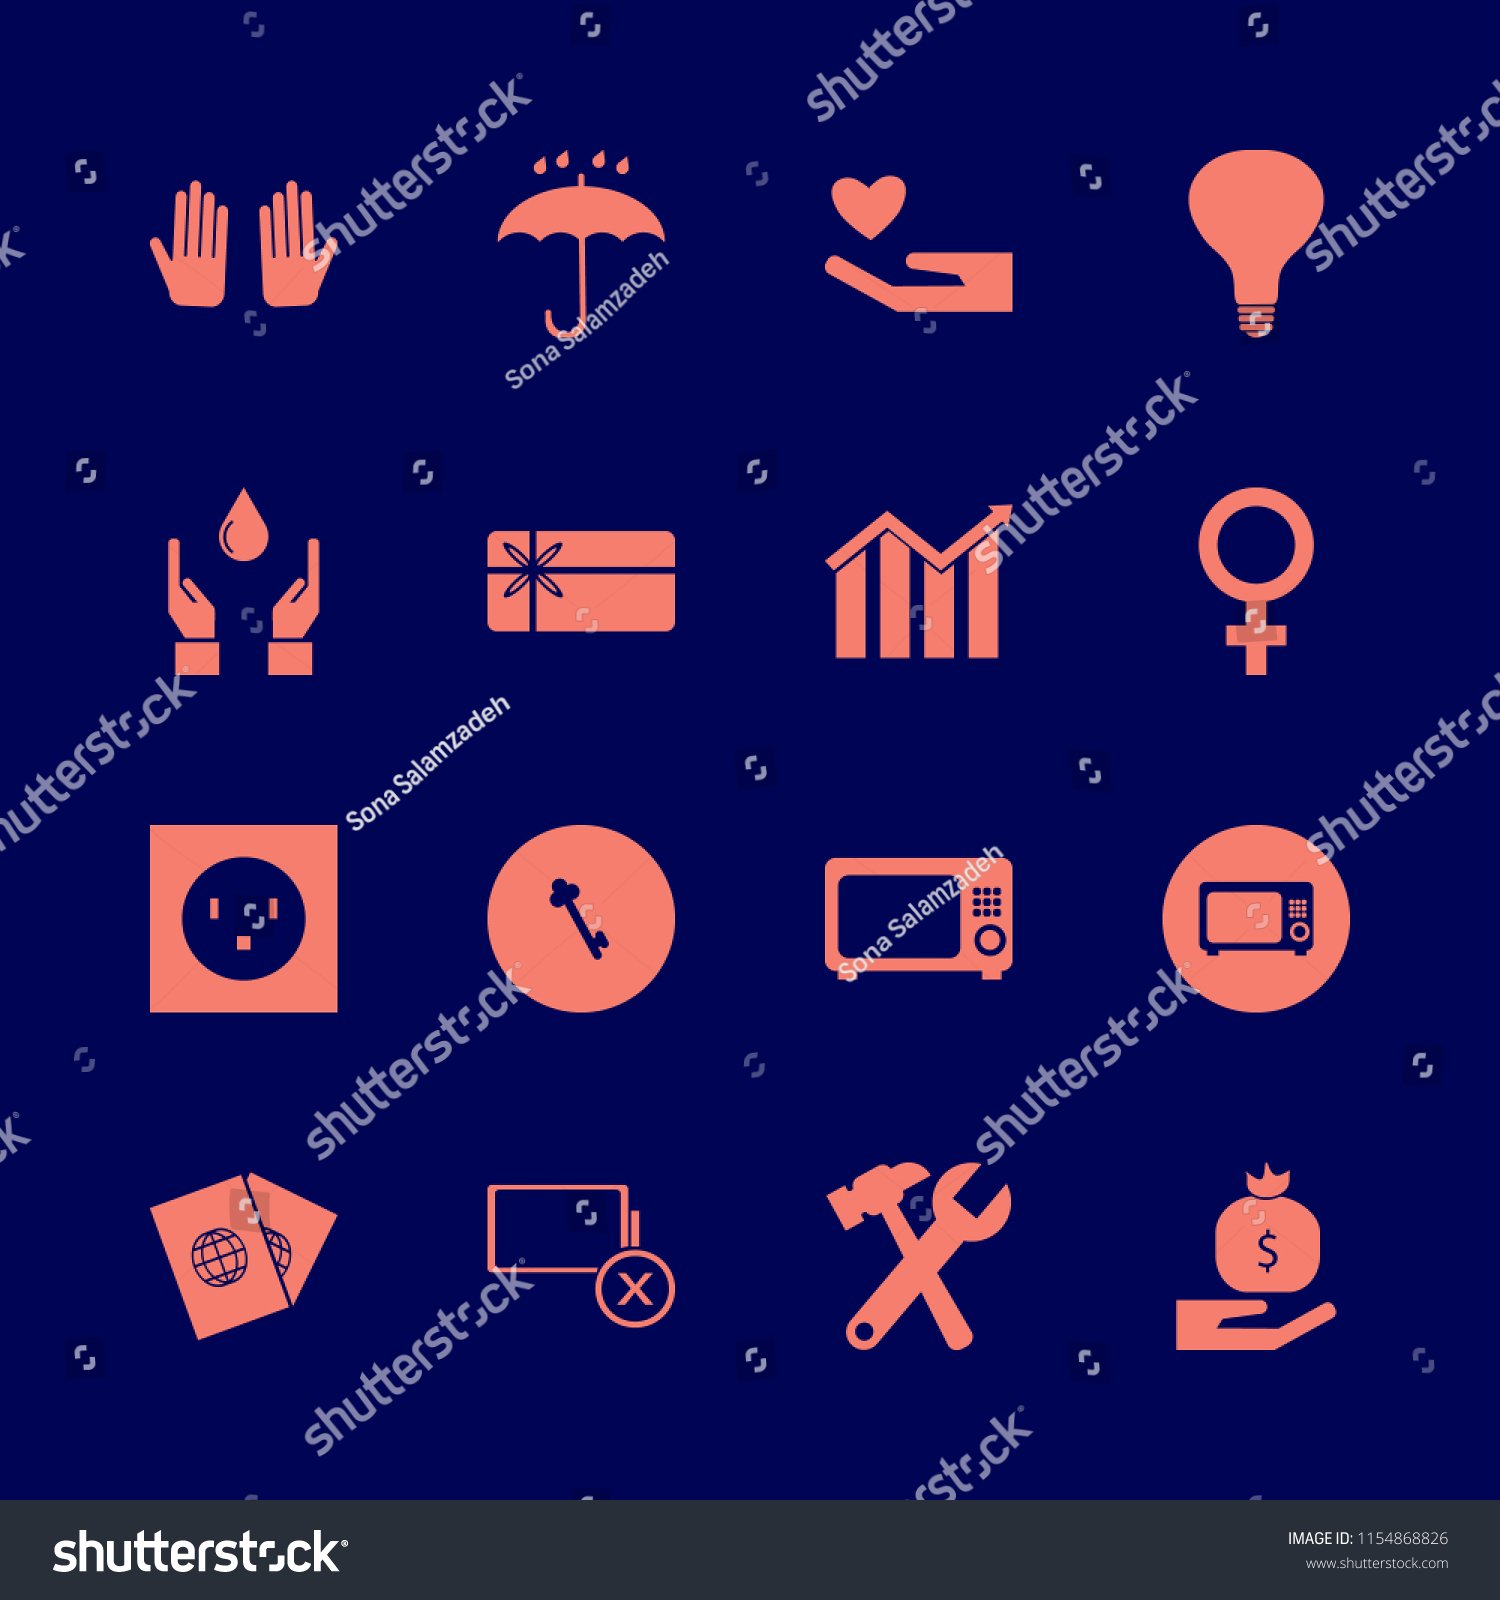 Hand Vector Icons Set Hands Drop Stock Vector (Royalty Free